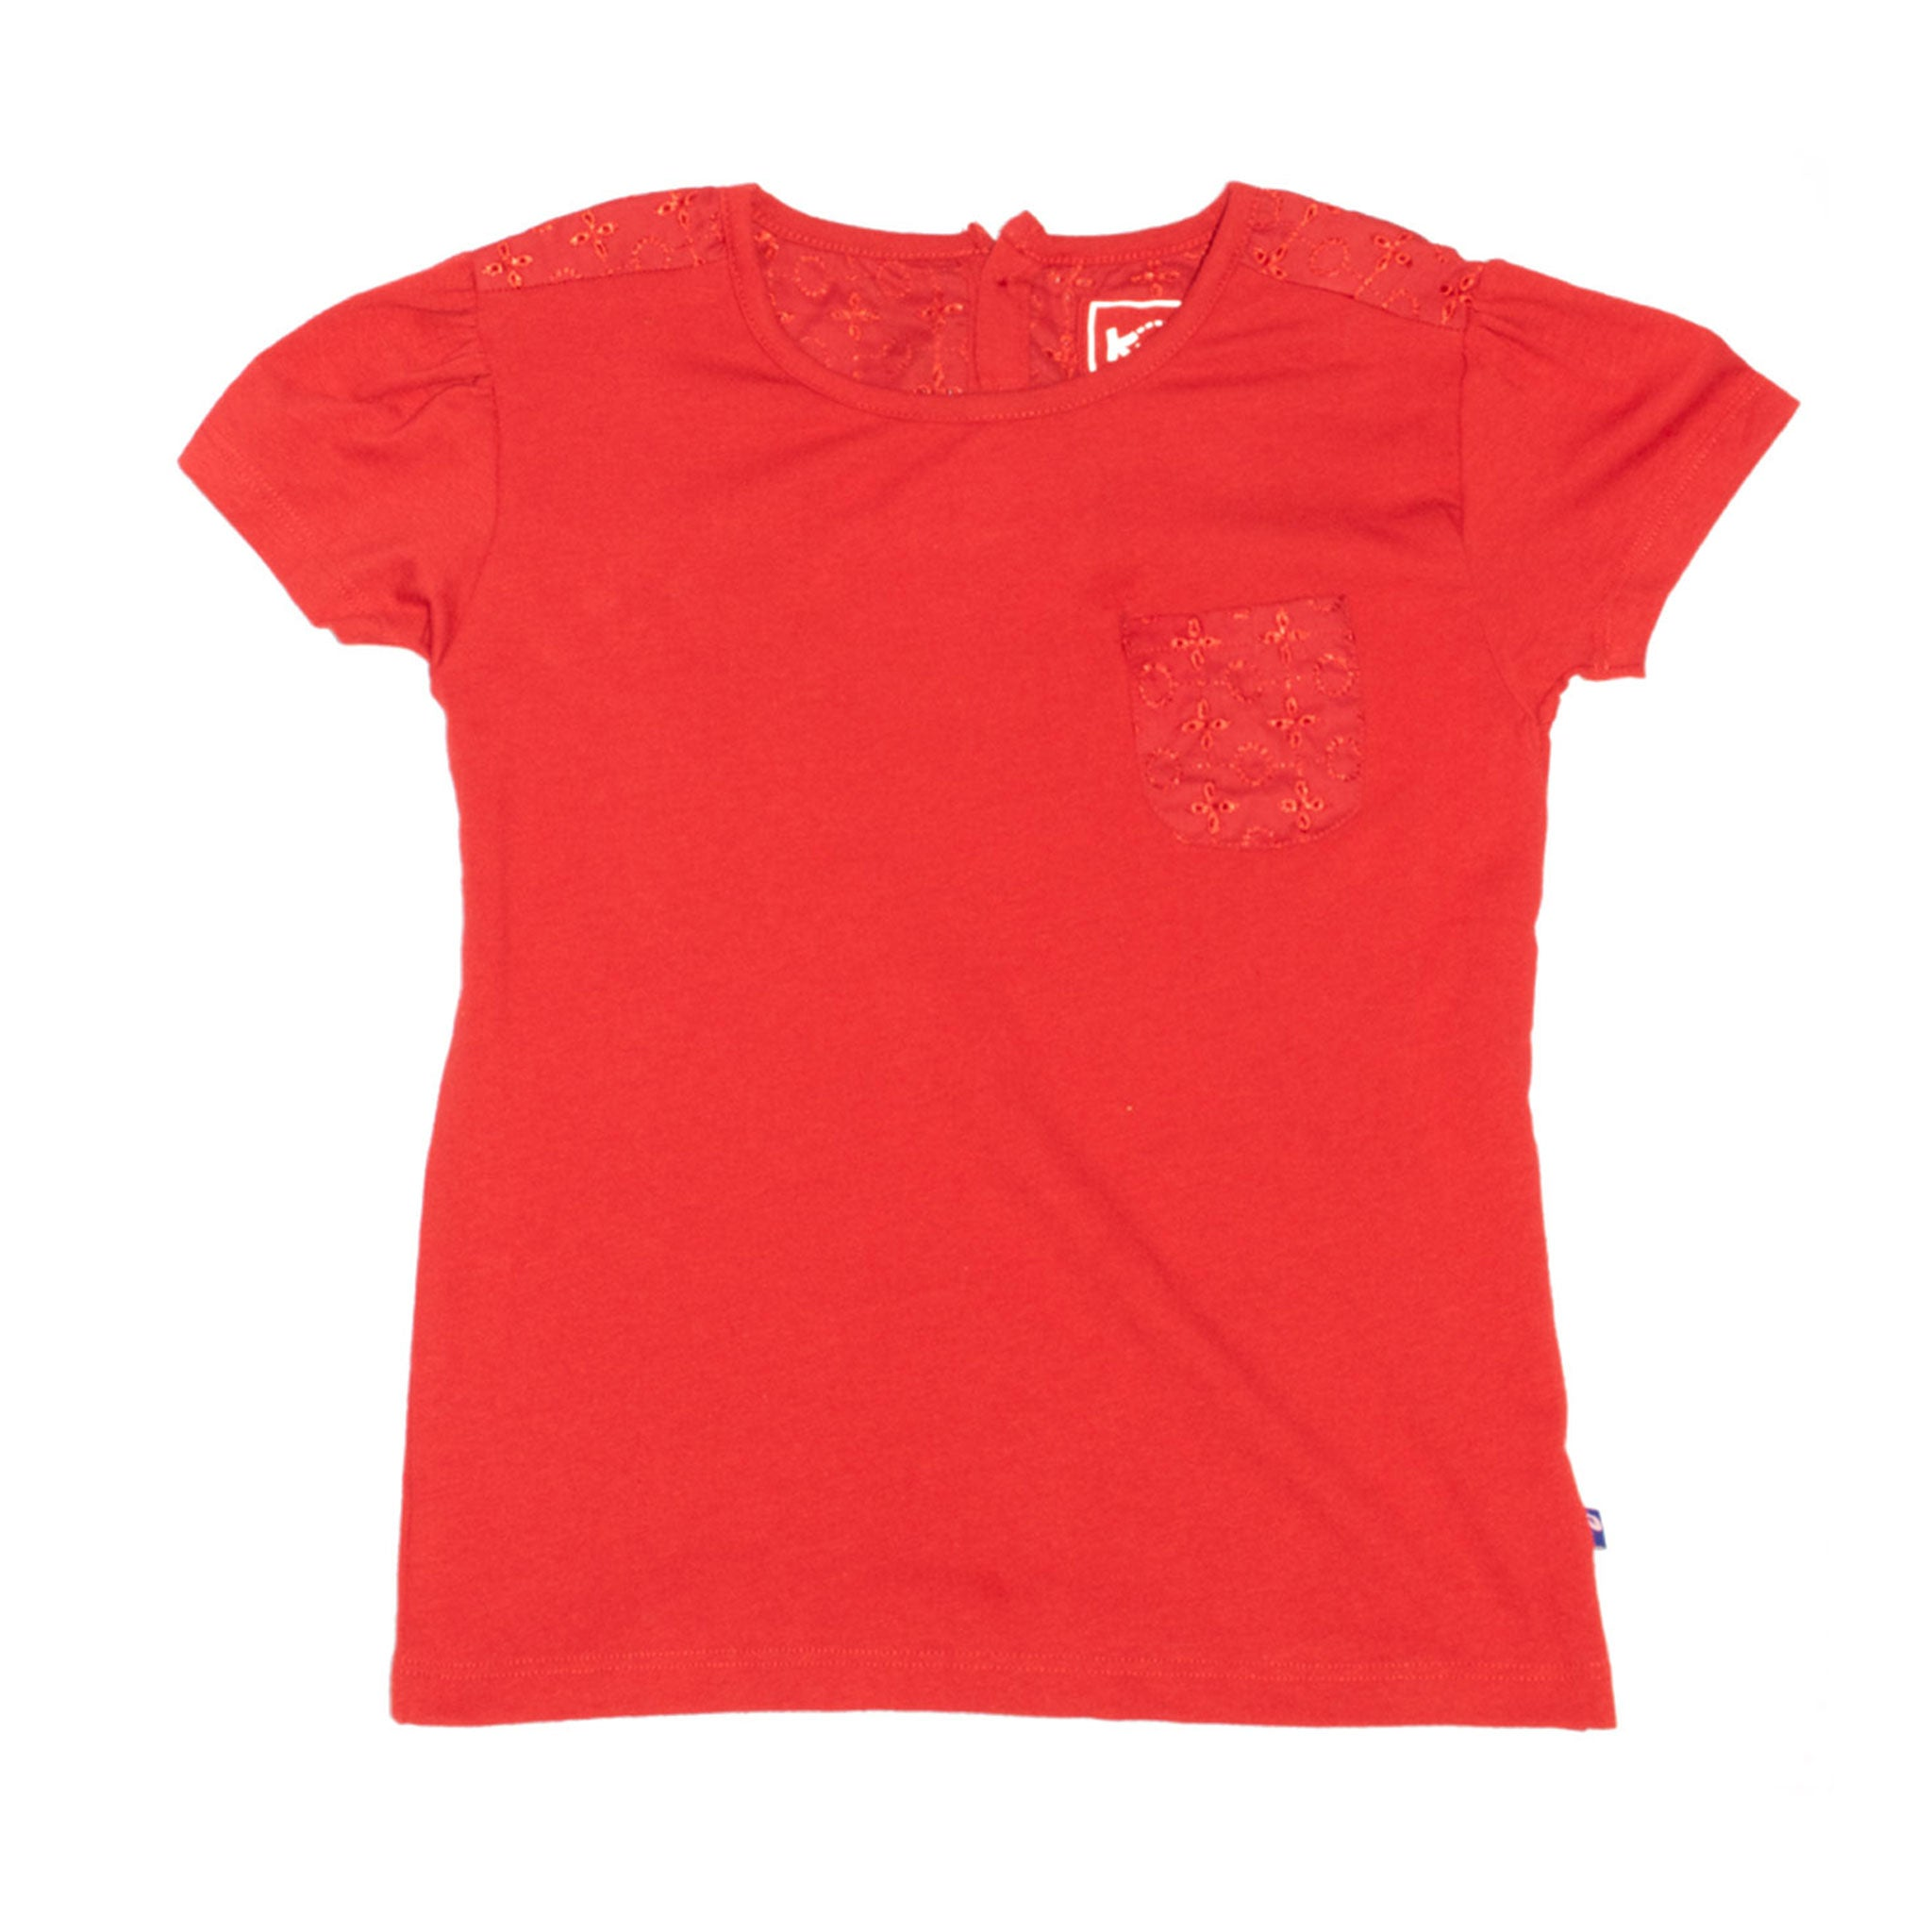 GIRL'S PRINTED TEE - RED / PANEL POCKET